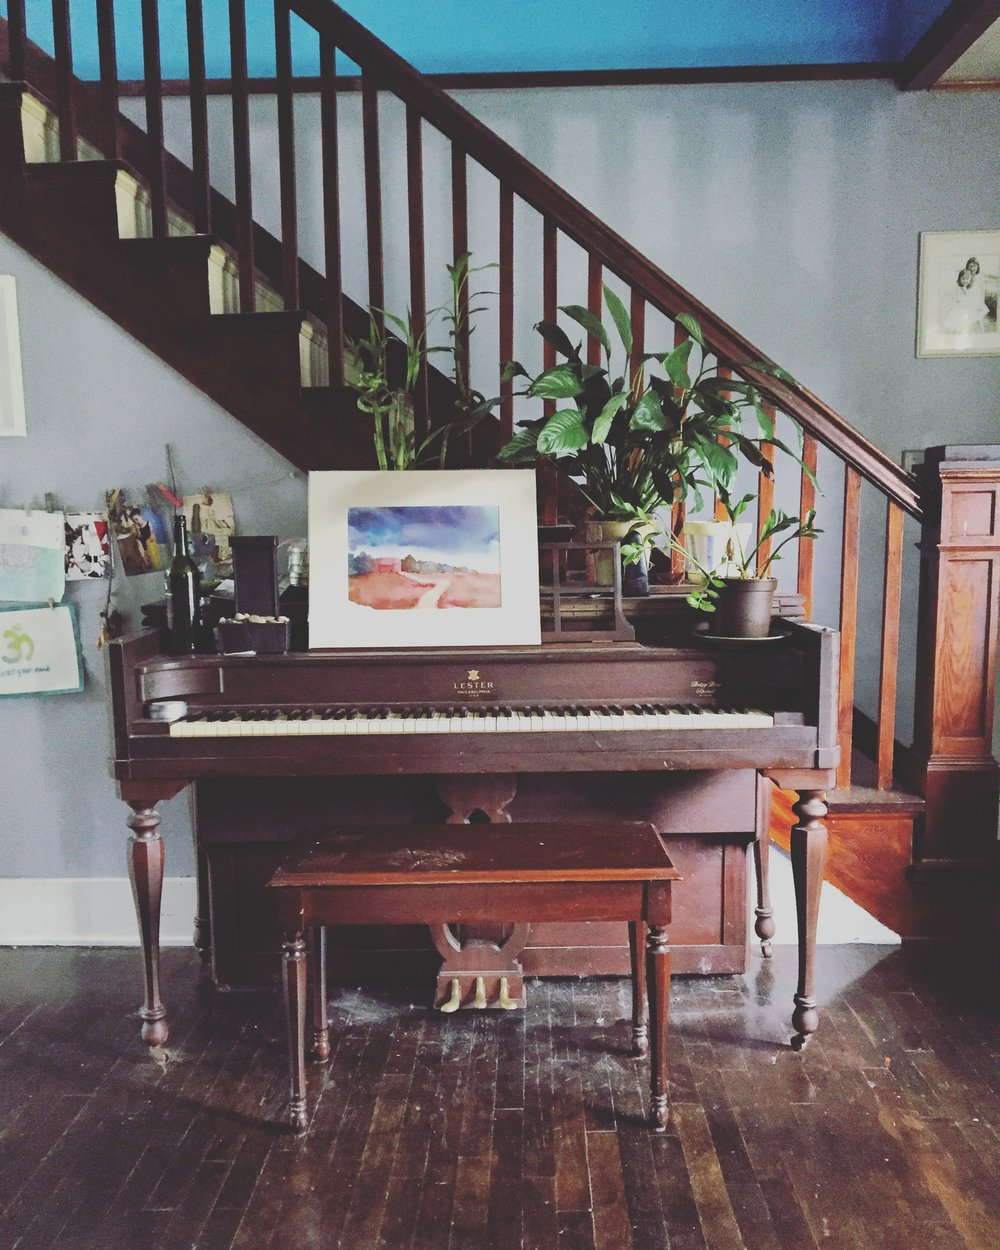 This is the view when you walk into her dining room from the living room.  Brooke is super talented in a lot of ways.  One is her piano playing skills. I love that this is the focal point of her dining room. The stairs lead up to her daughters' rooms, which I will do a tour of in a future post.  To the left are the kitchen and bathroom, and to the right is her dining table.